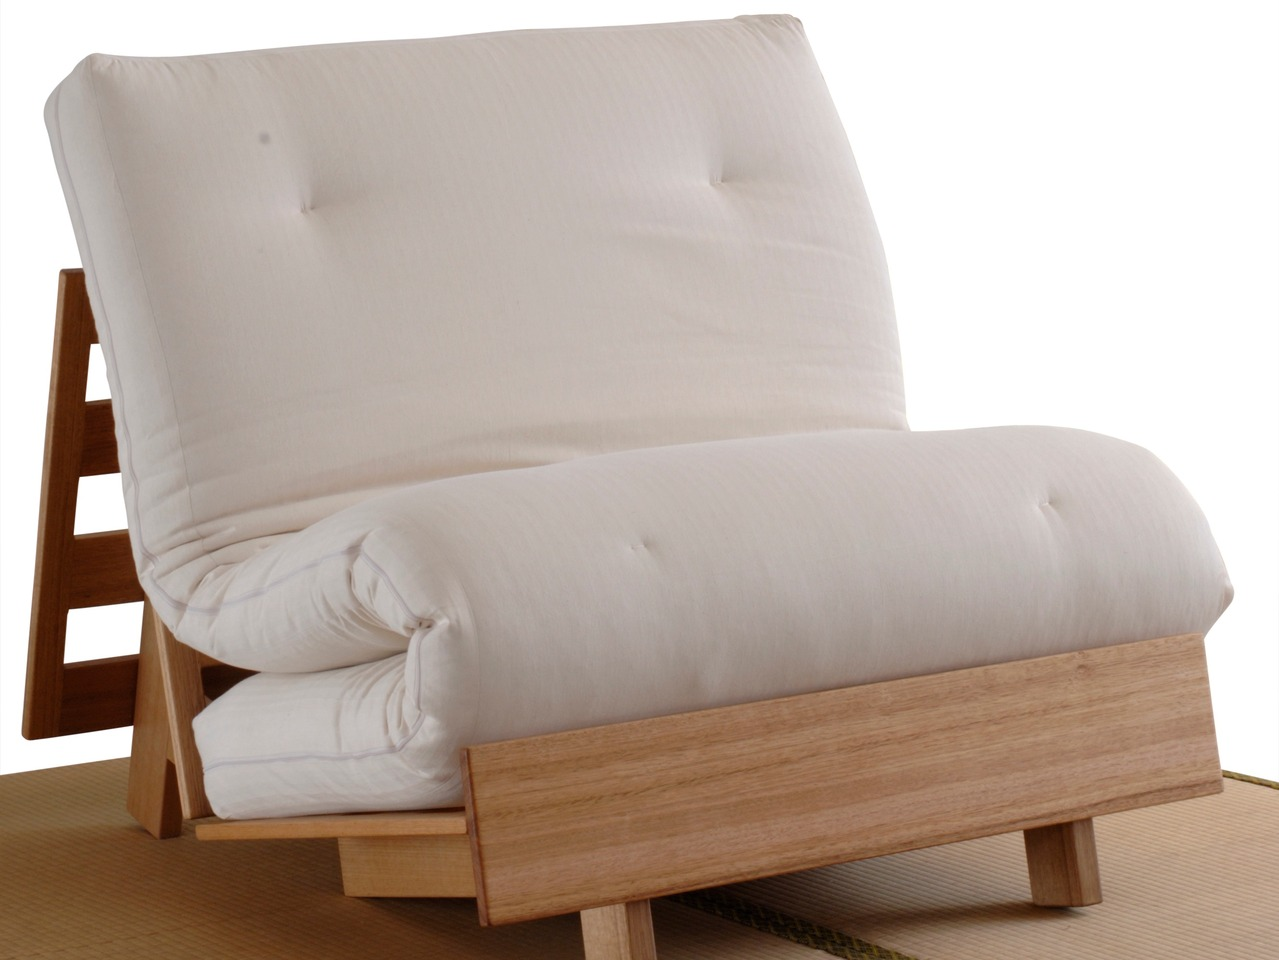 3 Fold Sofa Bed With Legs By Zen Beds And Sofas By Dan Walker Handkrafted